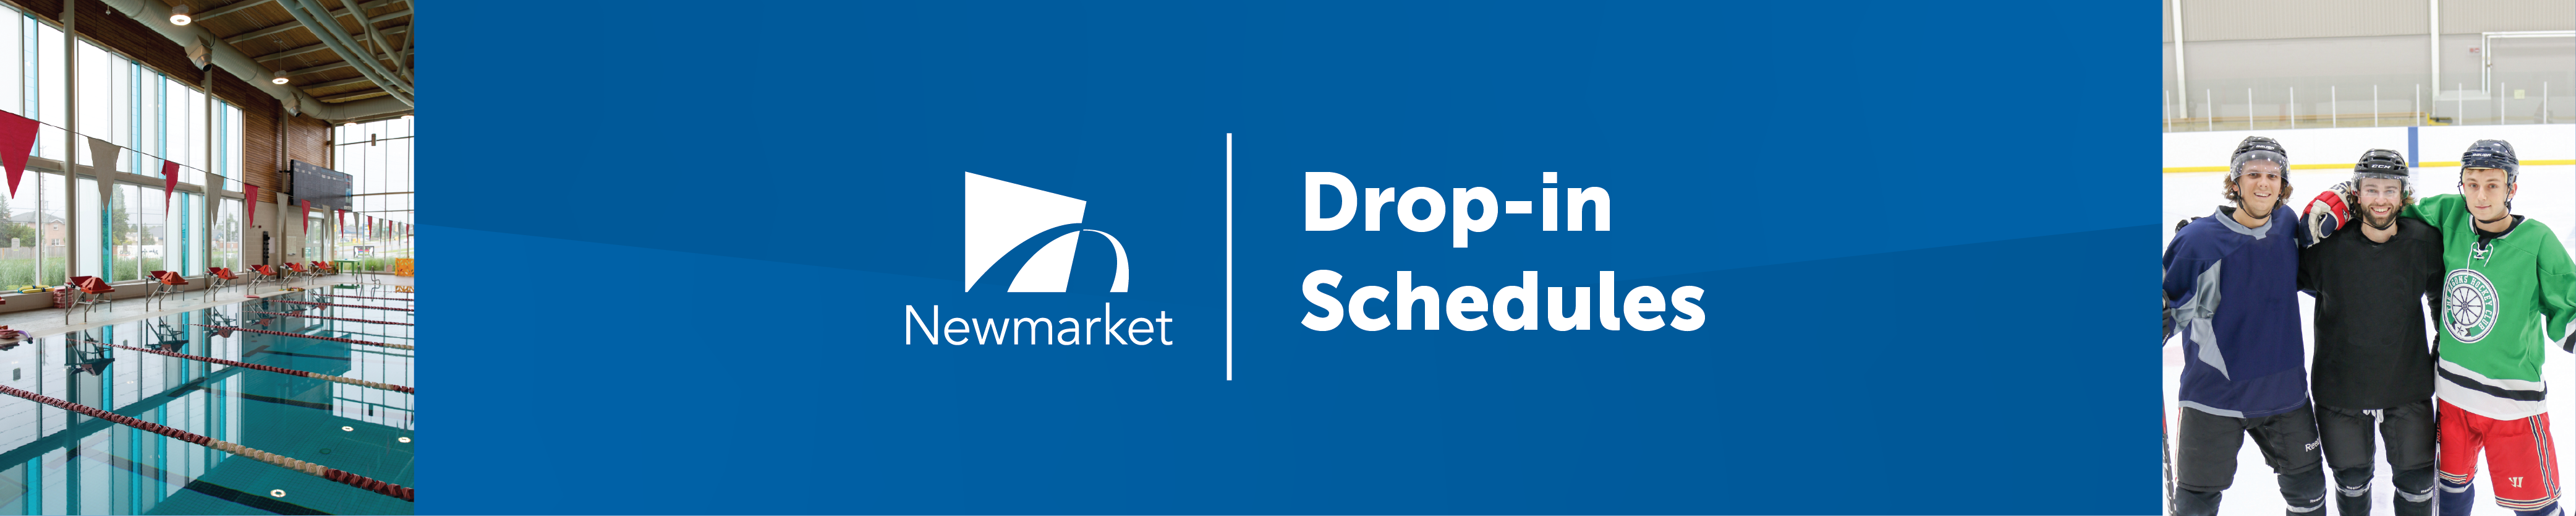 drop in schedule banner